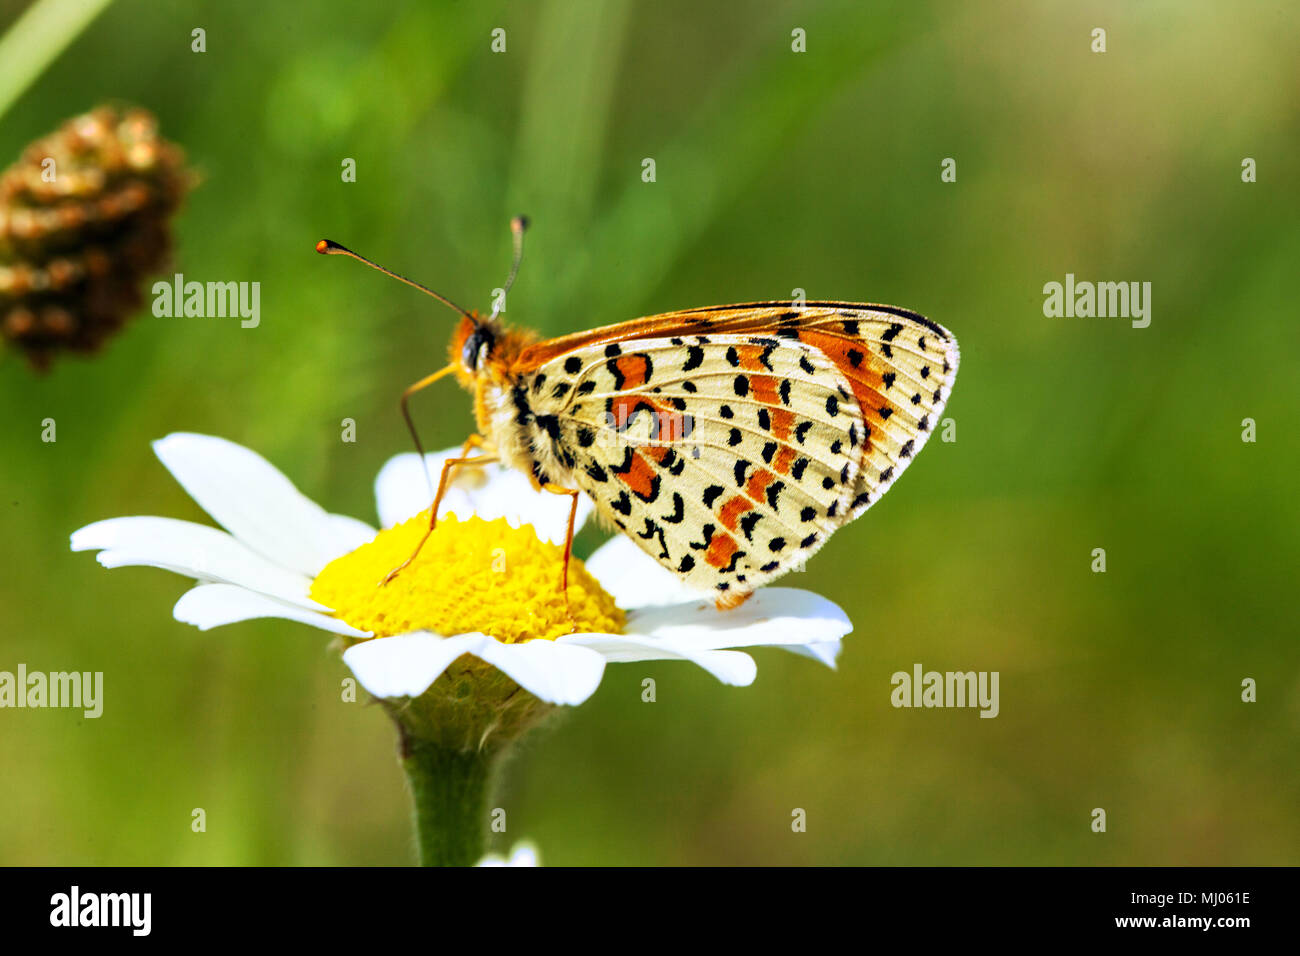 Spotted Fritillary Melitaea didyma butterfly taking nectar from a daisy flower in the Picos  de Europa Northern Spain - Stock Image